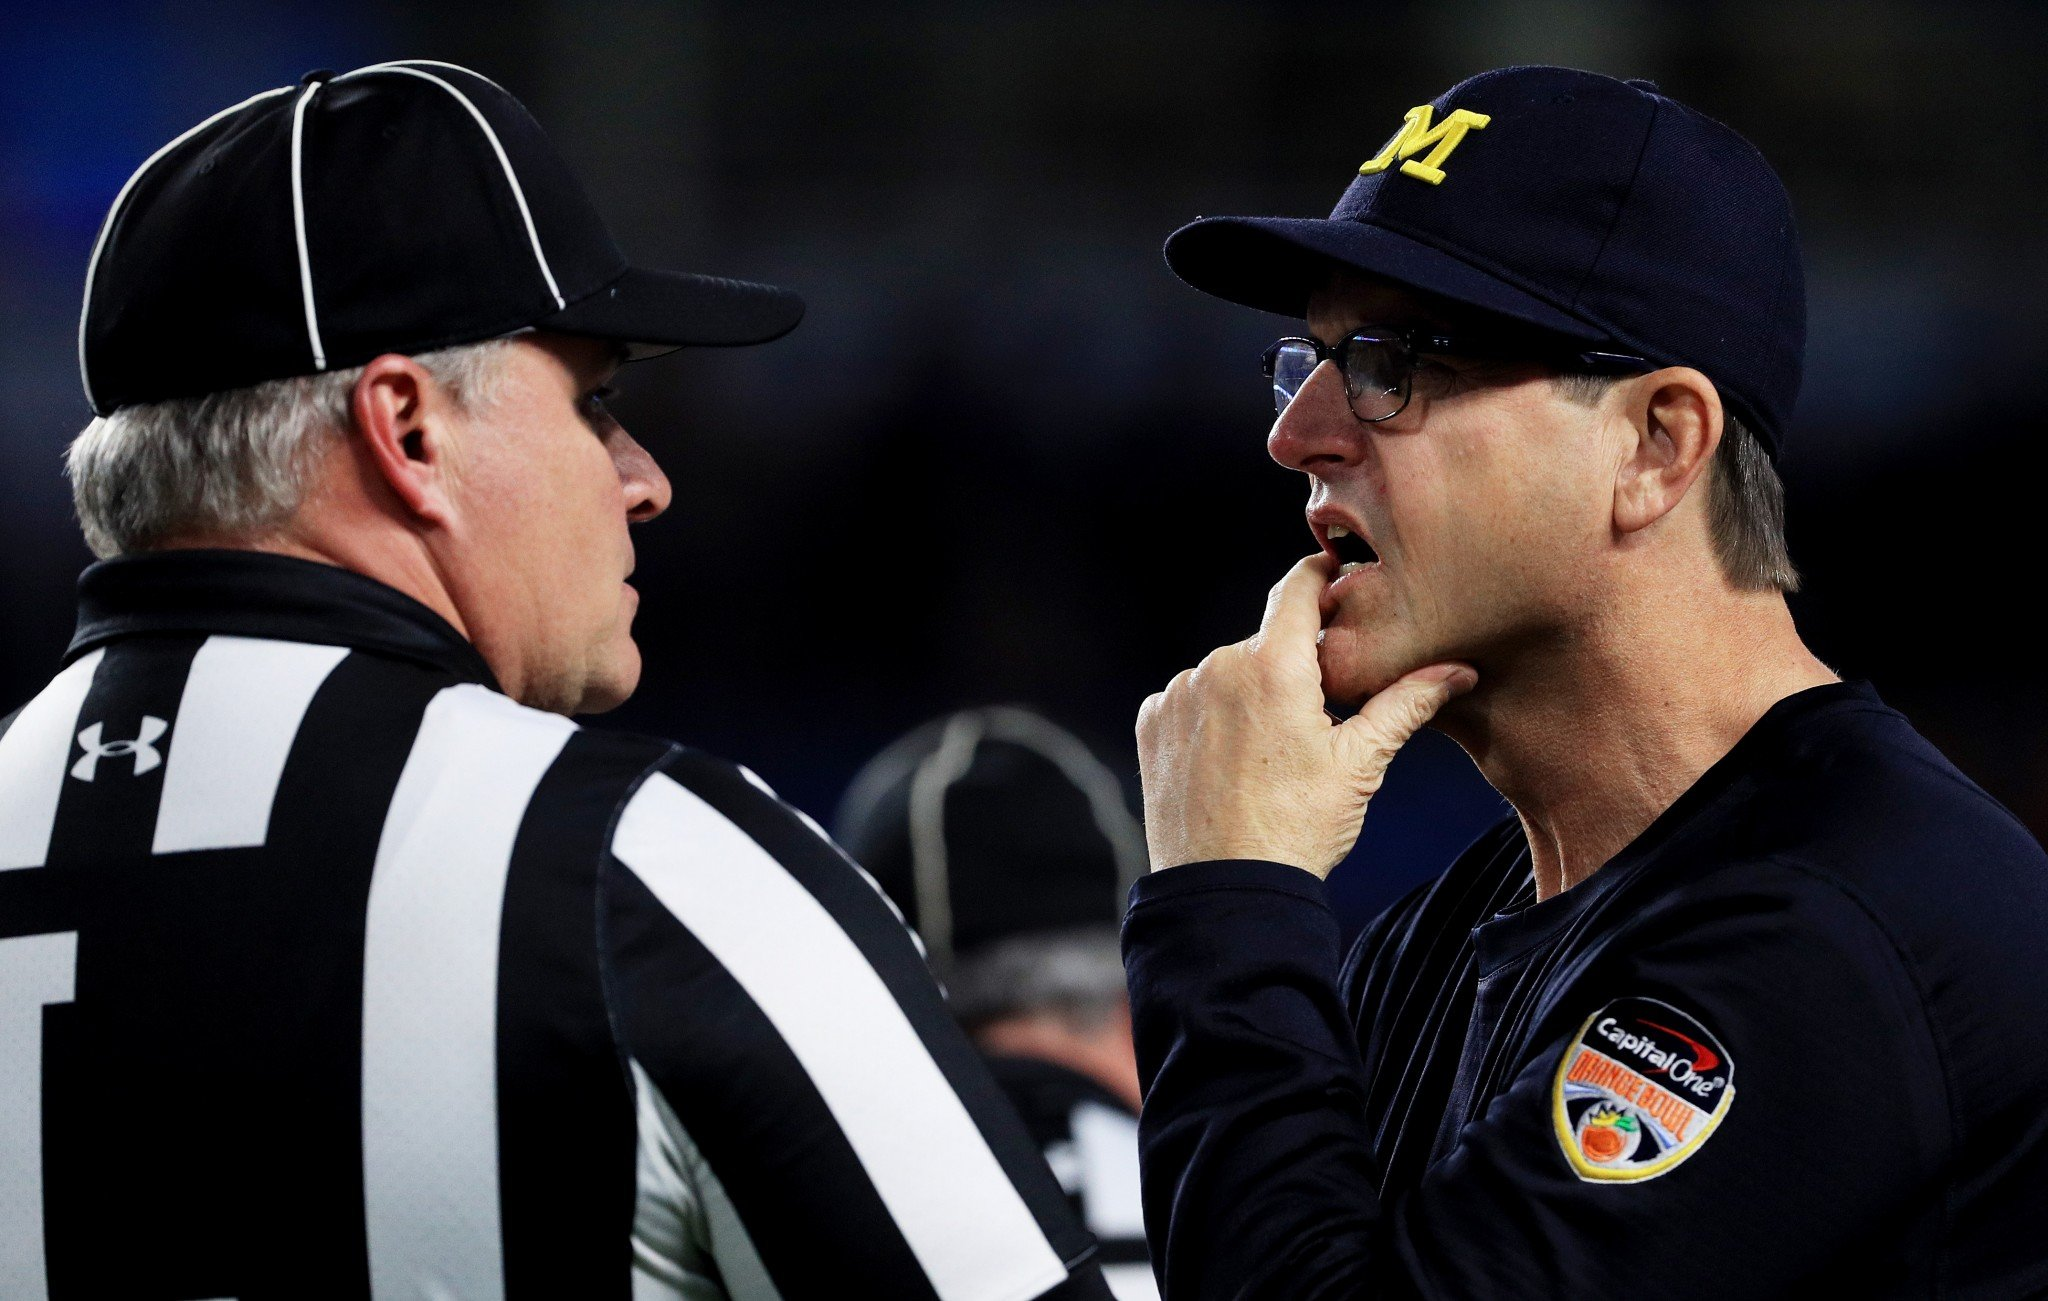 Is Michigan coach Jim Harbaugh talking to an official or pondering what he'll do in Italy? (Getty)